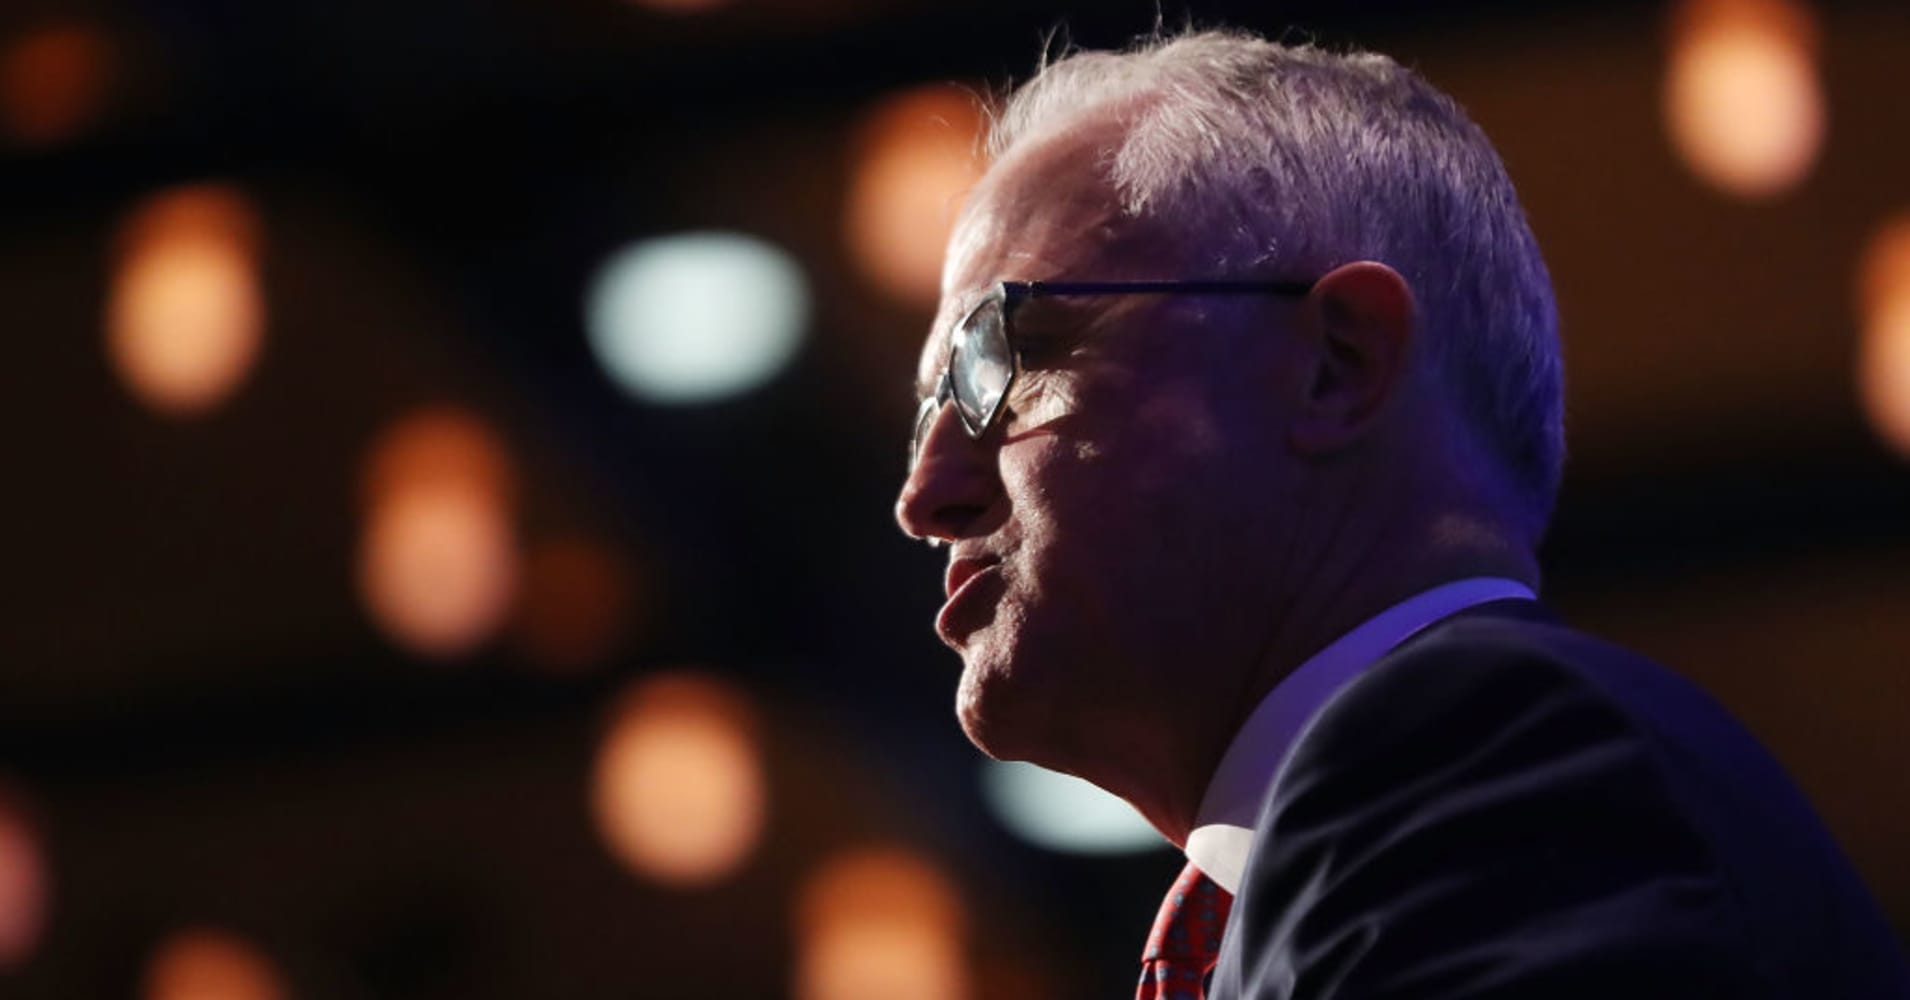 Australian PM condemns call for Muslim migration ban